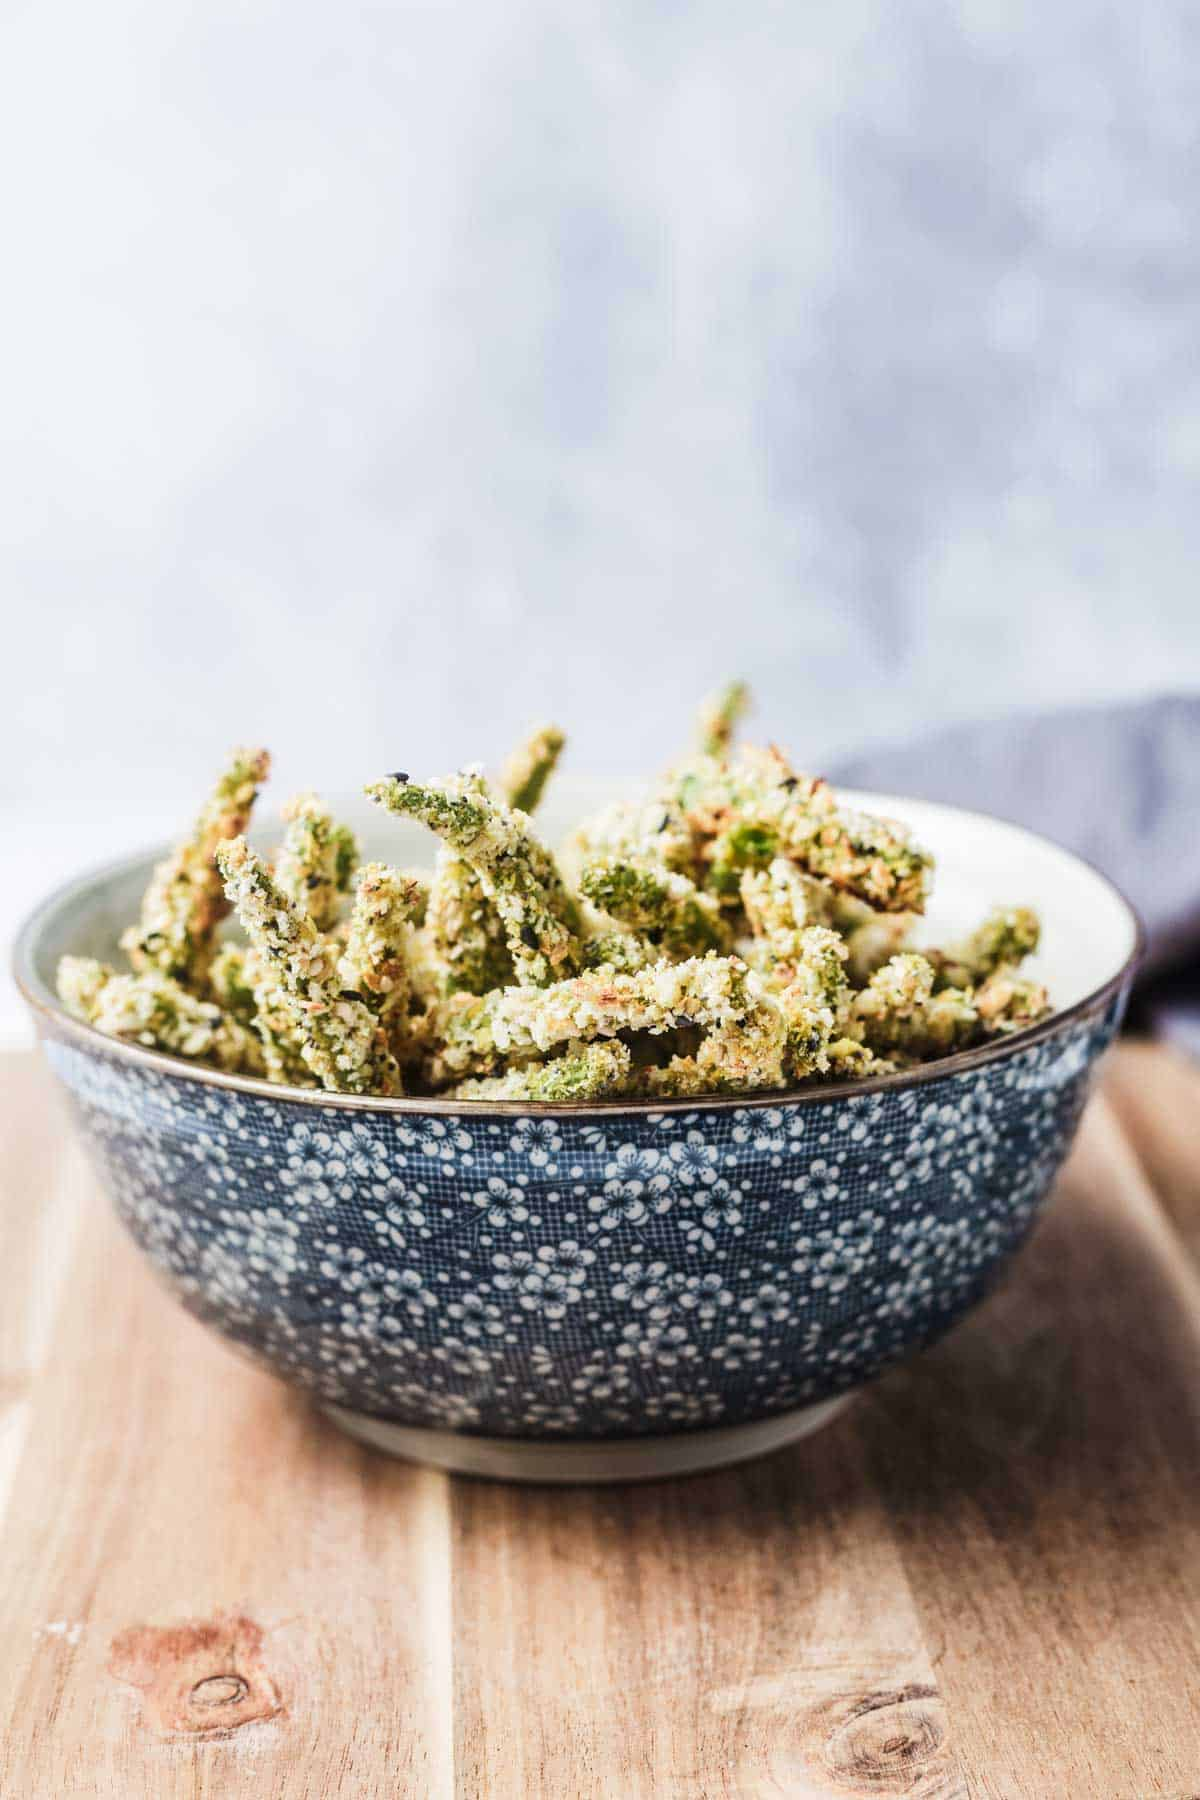 Several green bean fries in a blue floral bowl.